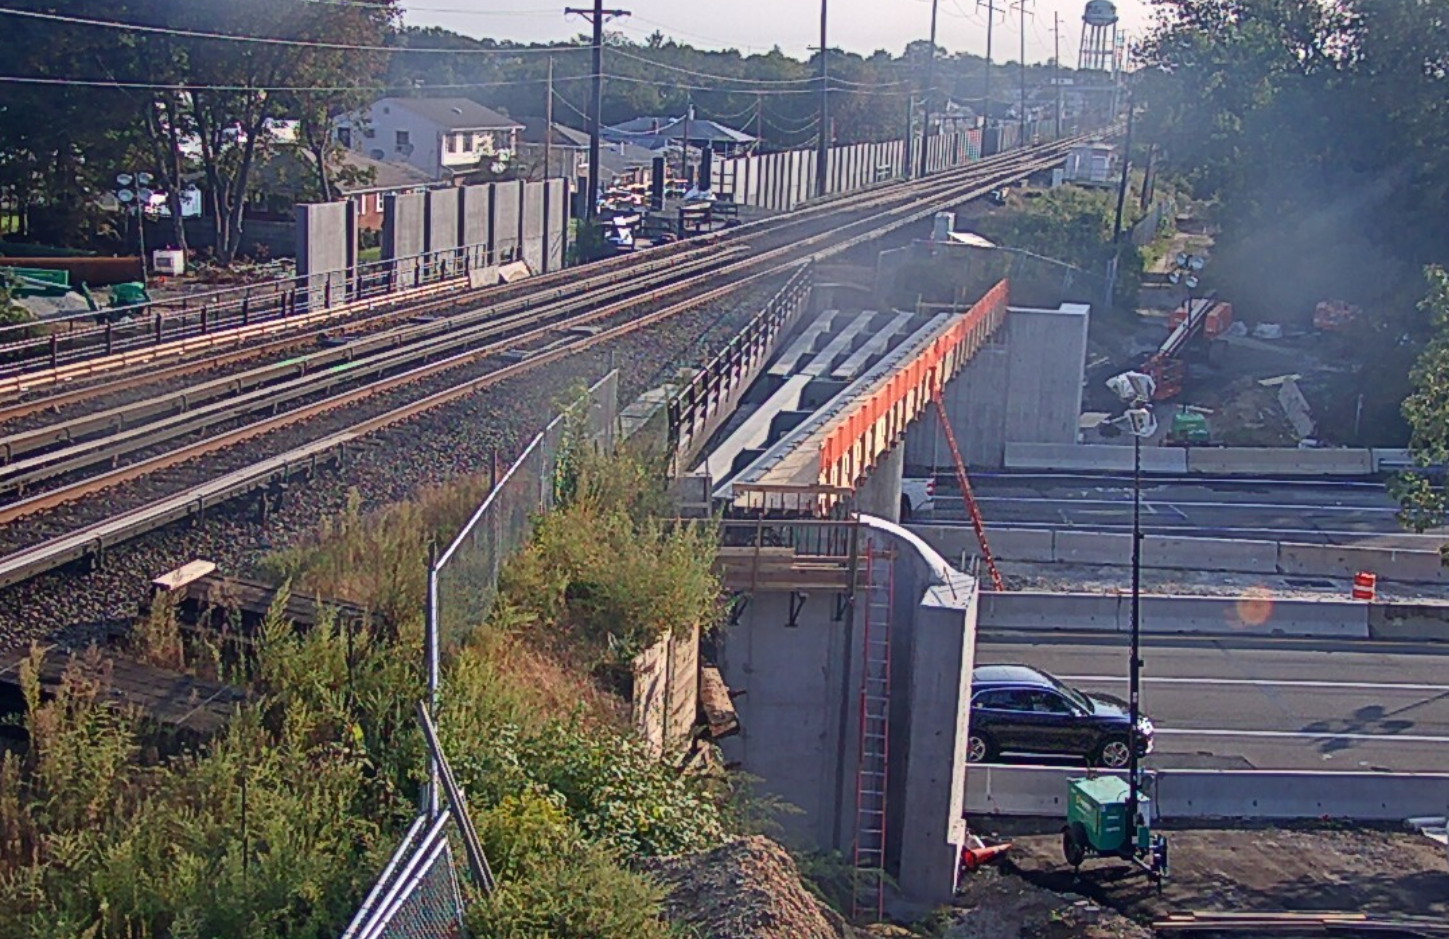 Main_Line-LIRR_Expansion-Meadowbrook Parkway Bridge 09-20-20